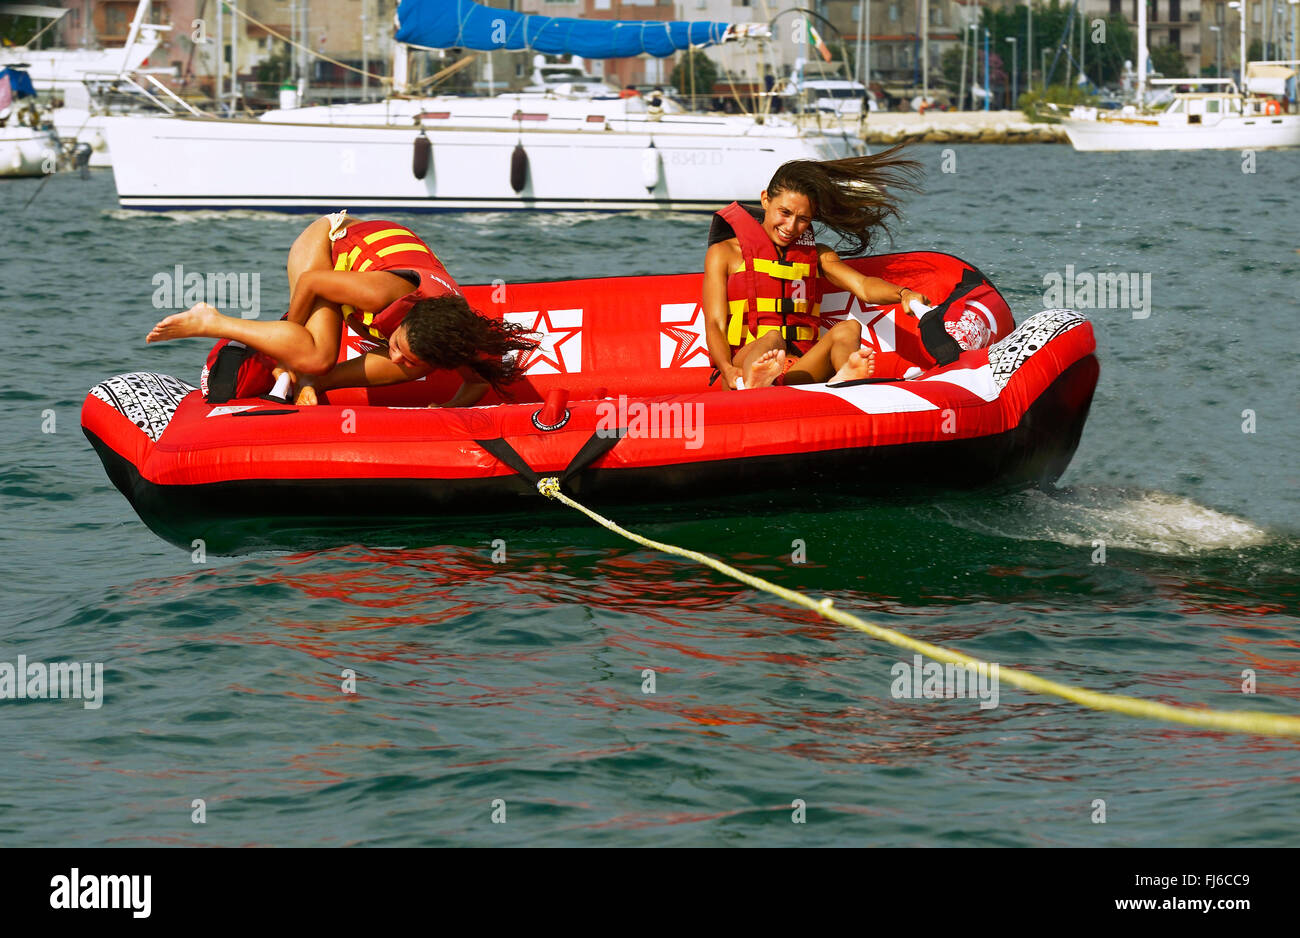 two girls are be pulled over the water with an air couch, France, Corsica - Stock Image